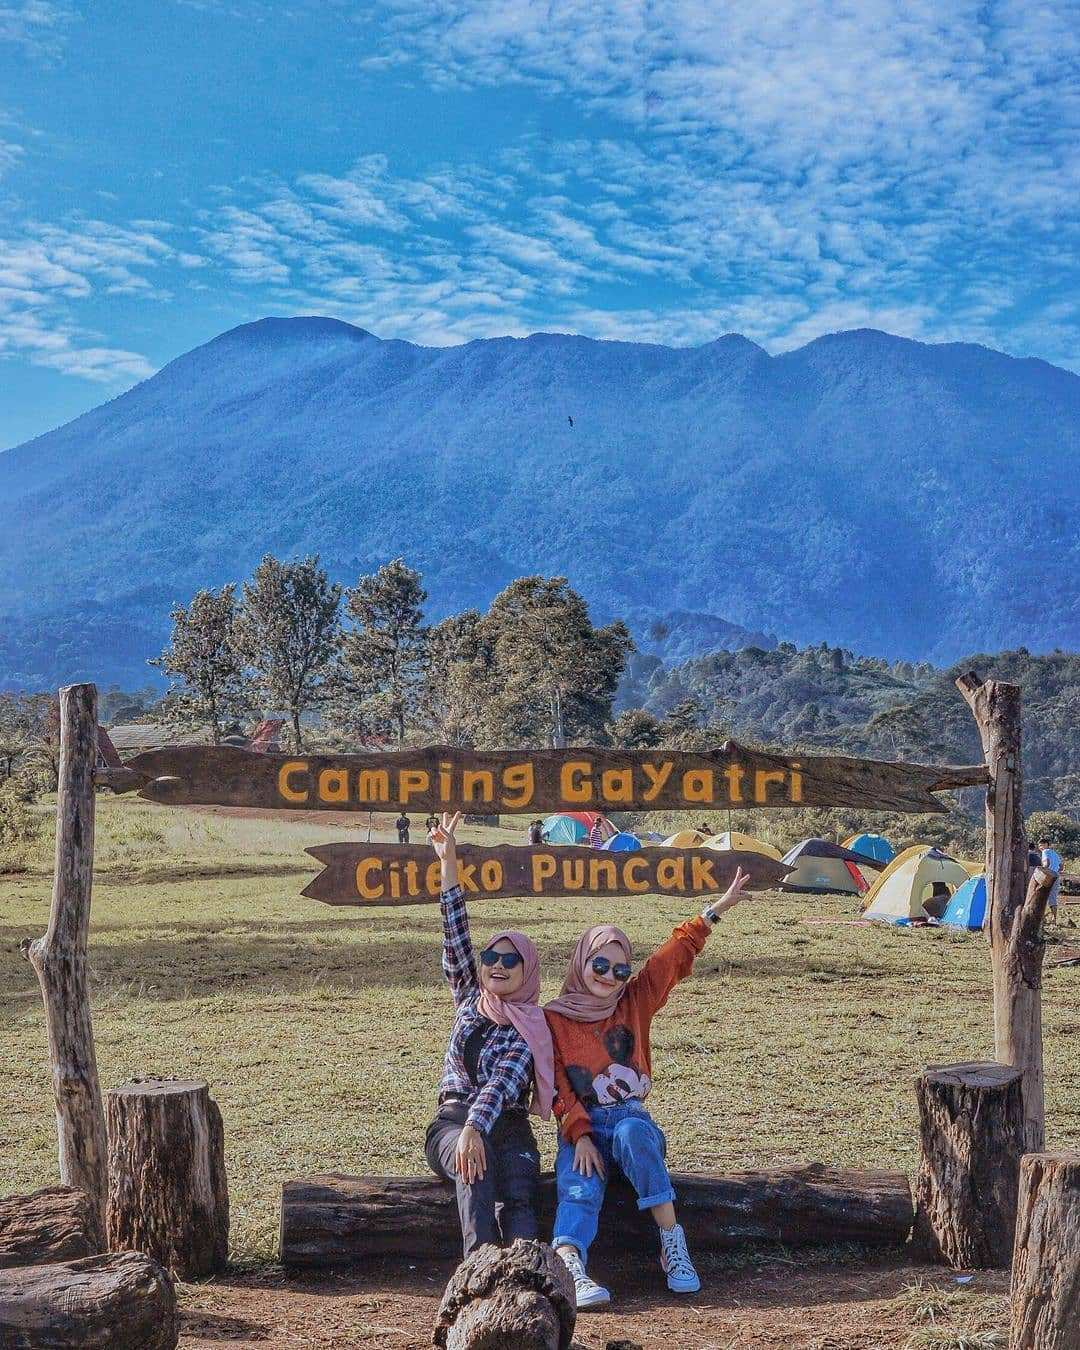 Berfoto di Camping Ground Gayatri, Image From @apsunandar